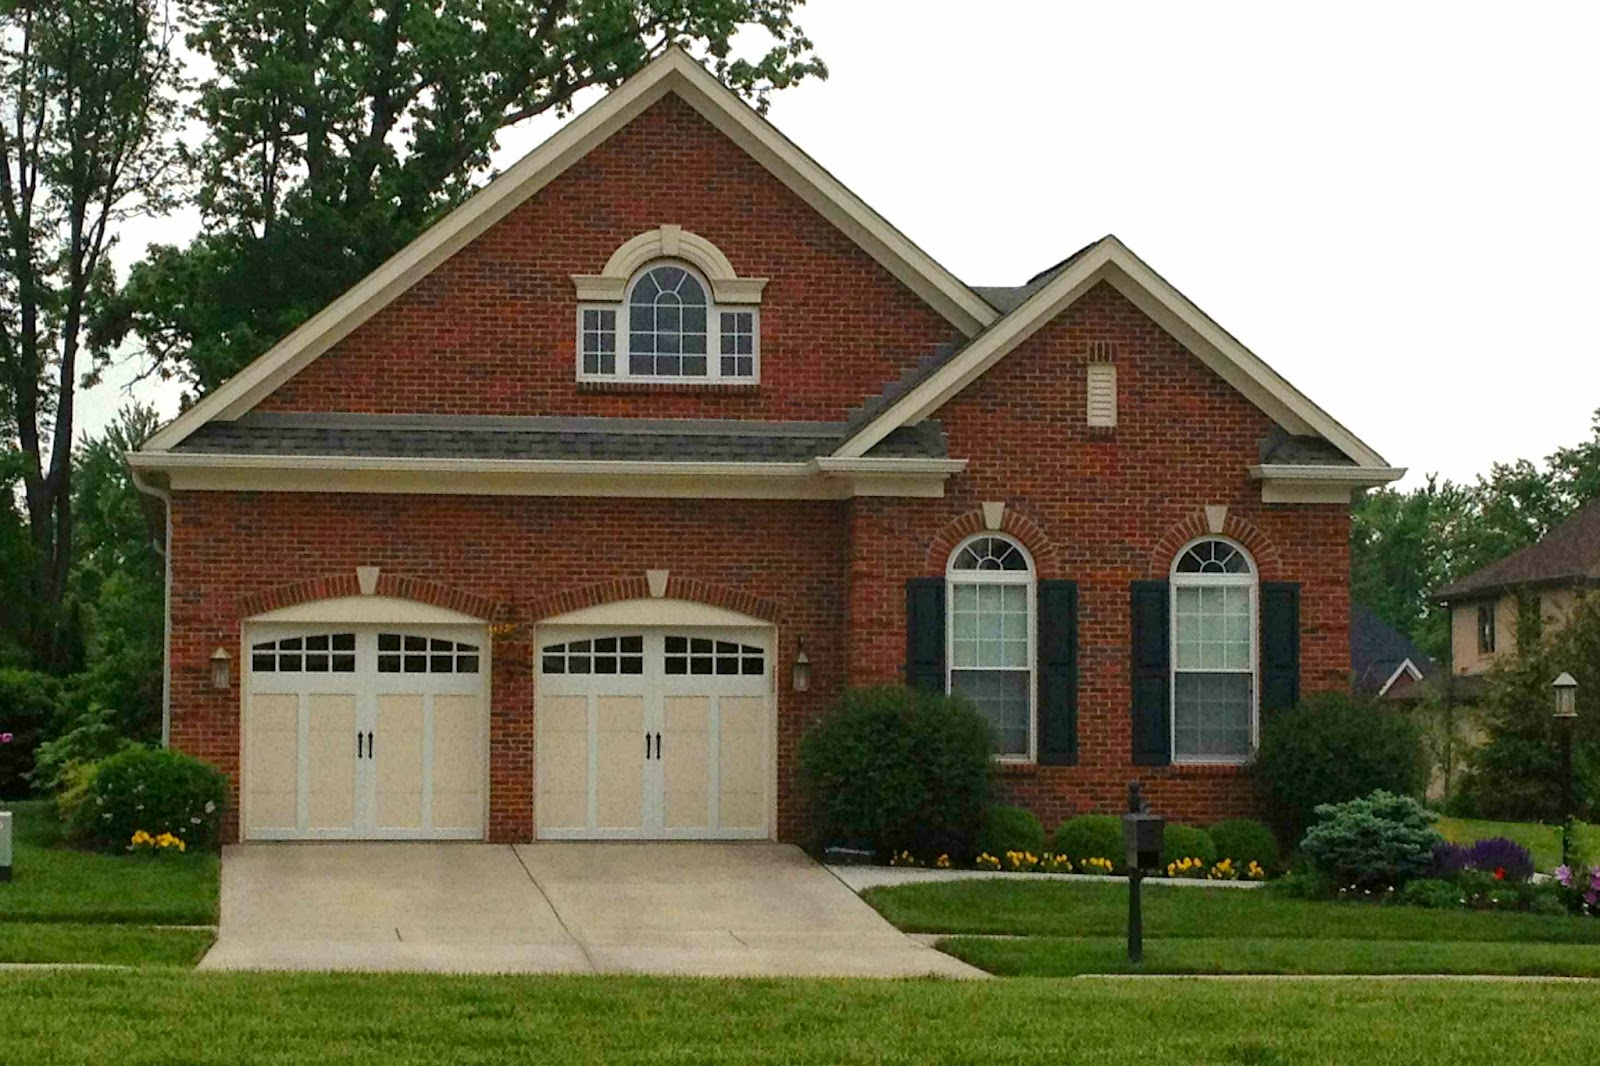 The arched shape of these garage doors\u0027 window openings and the ision of the windows with square grilles mimic the design of the arched windows to the ... & Garage Door Replacement: 10 Tips for Making the Right Choice ... Pezcame.Com